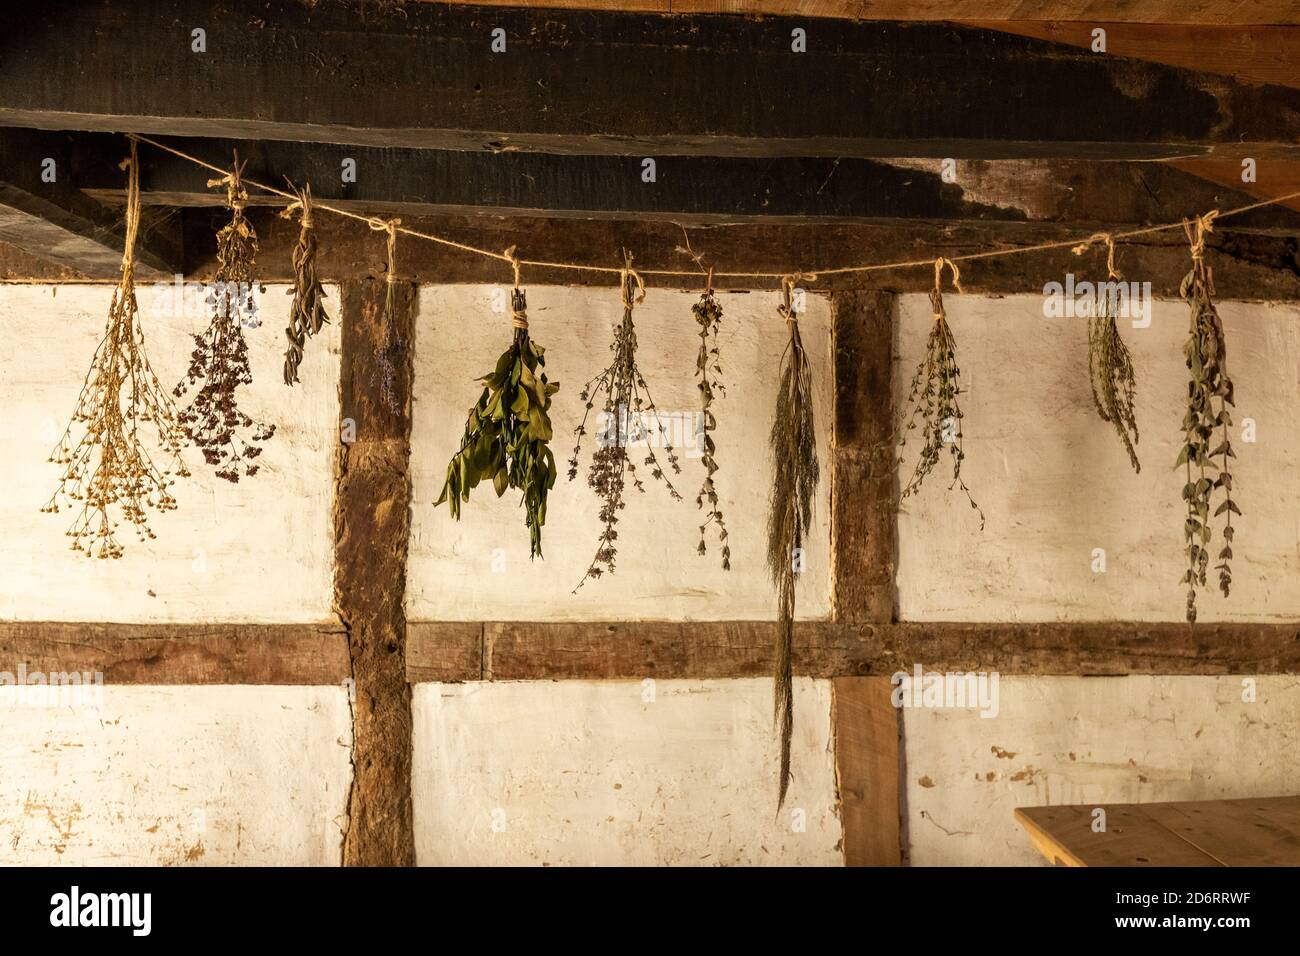 Bunches of herbs, plants, flowers hanging up to dry inside a timber framed house Stock Photo